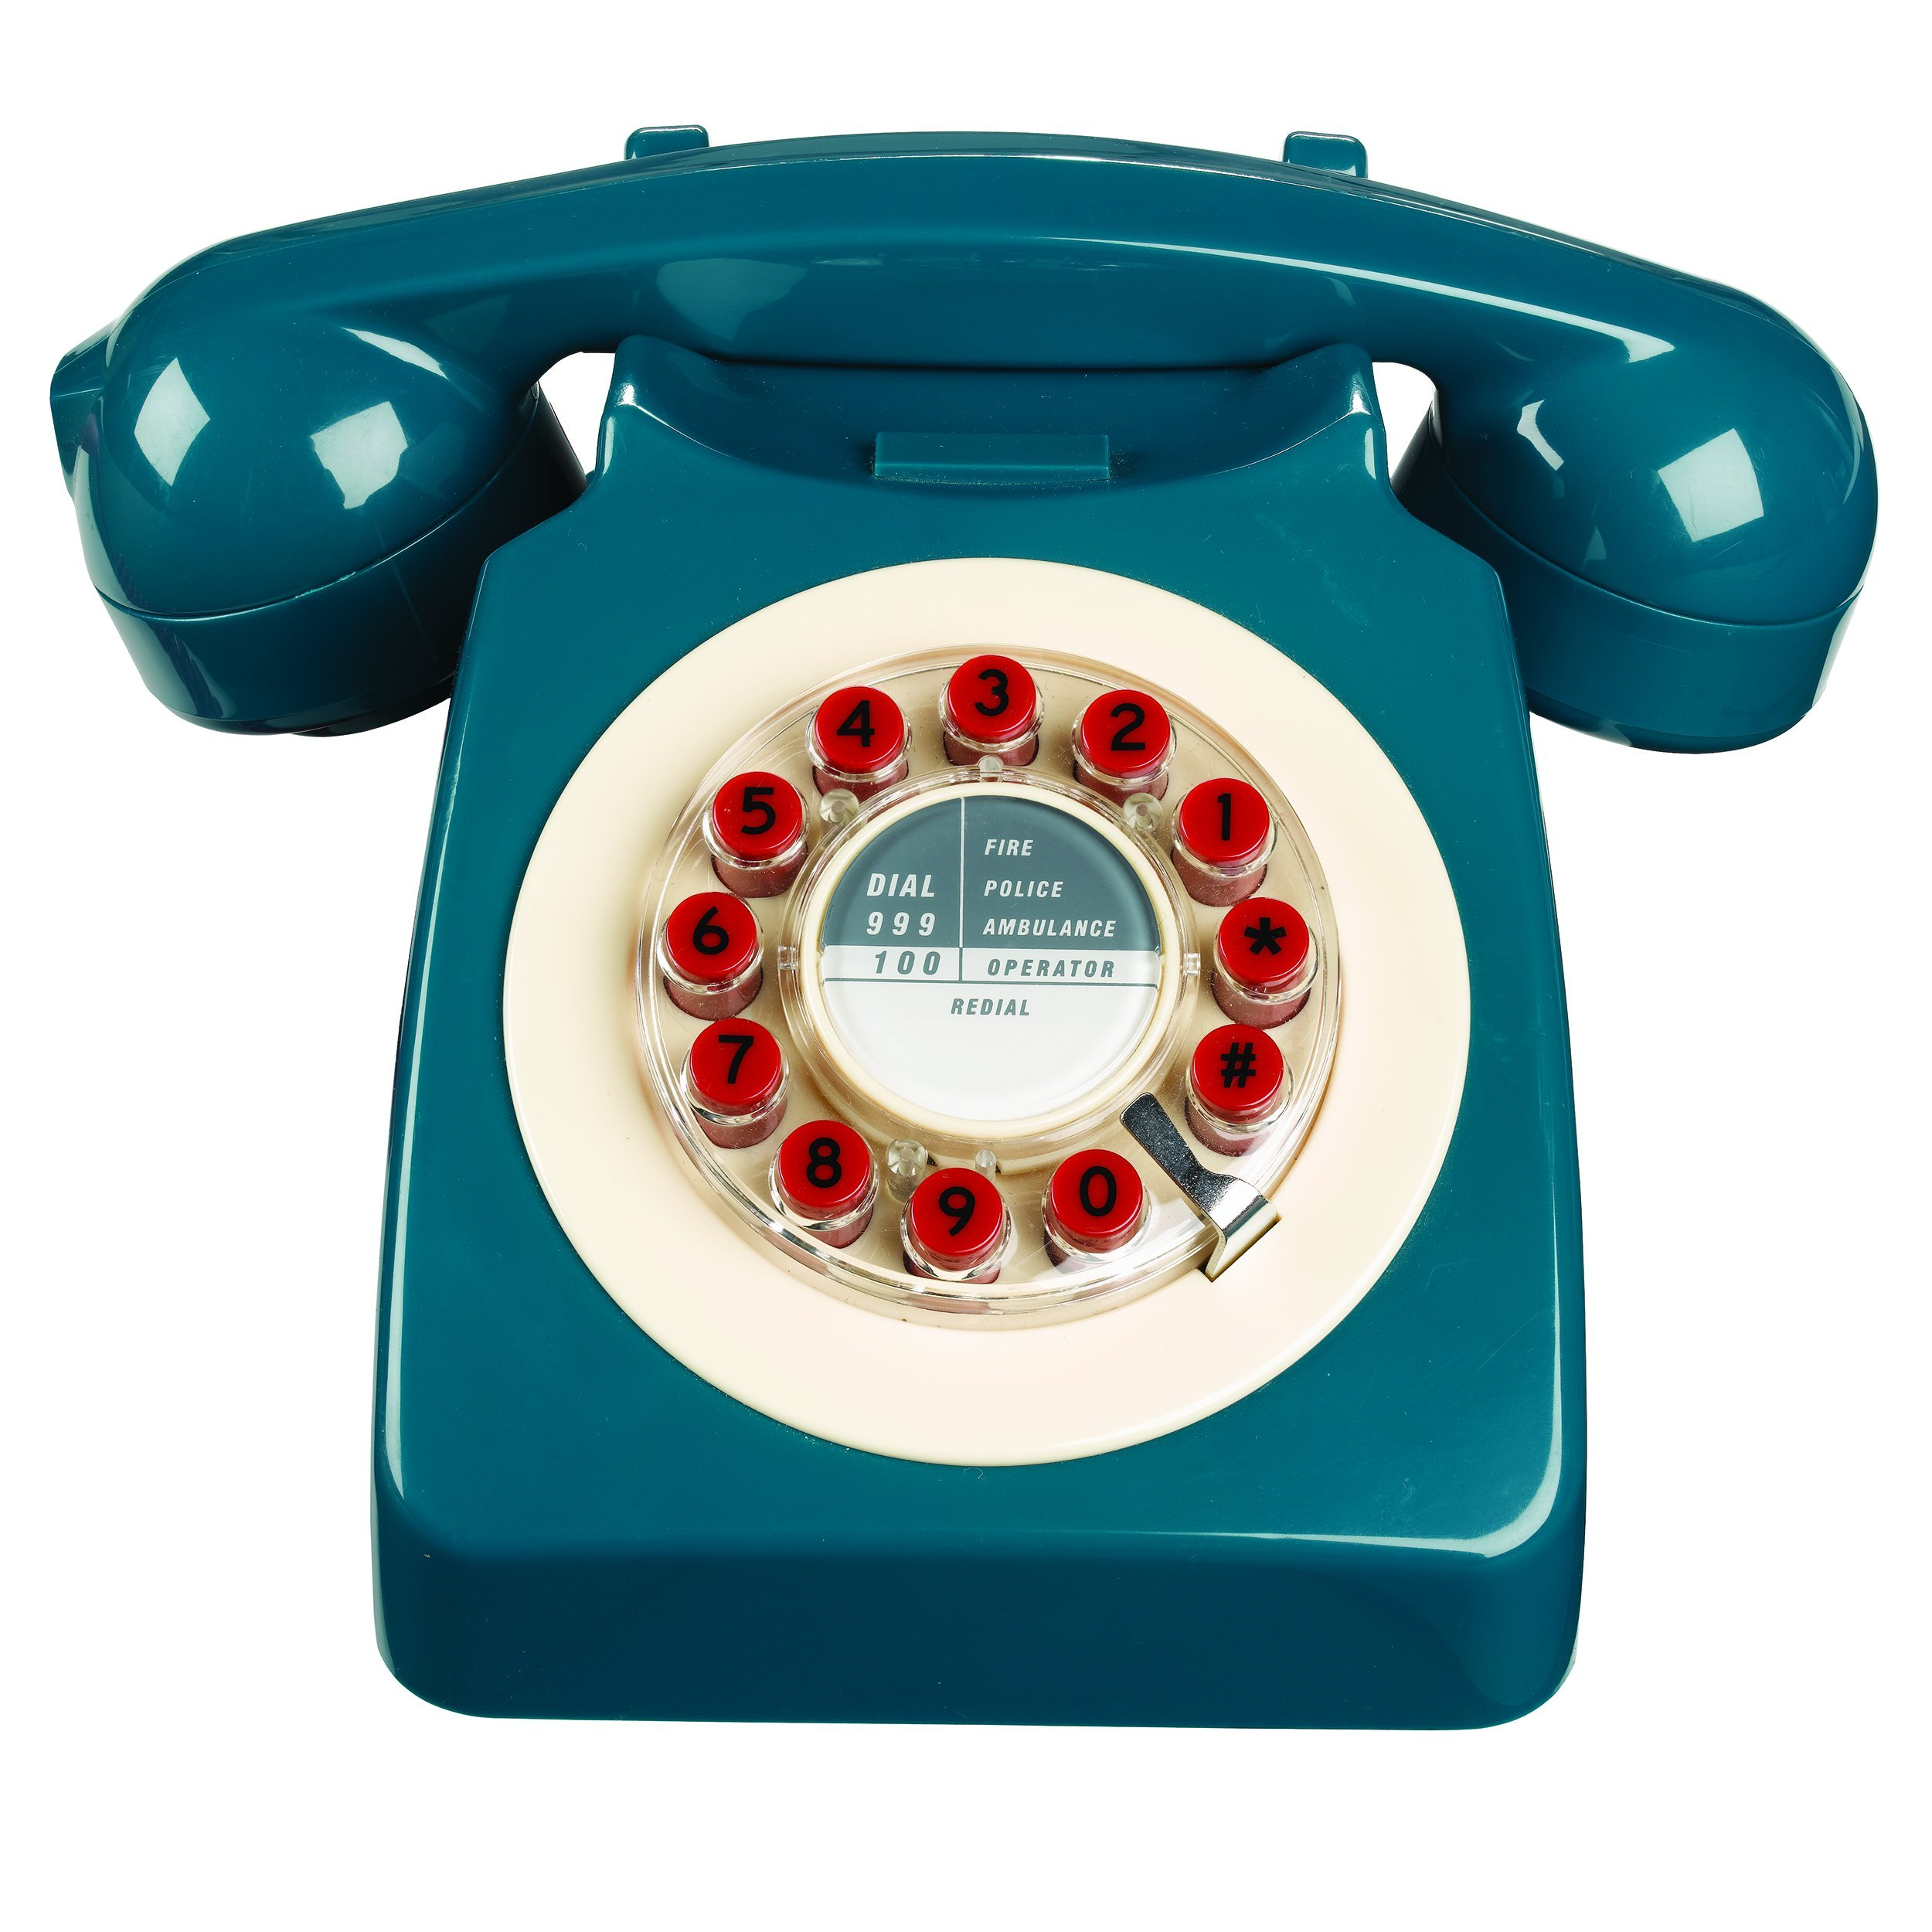 Wild Wood Rotary Design Retro Landline Phone for Home, Petrol Blue